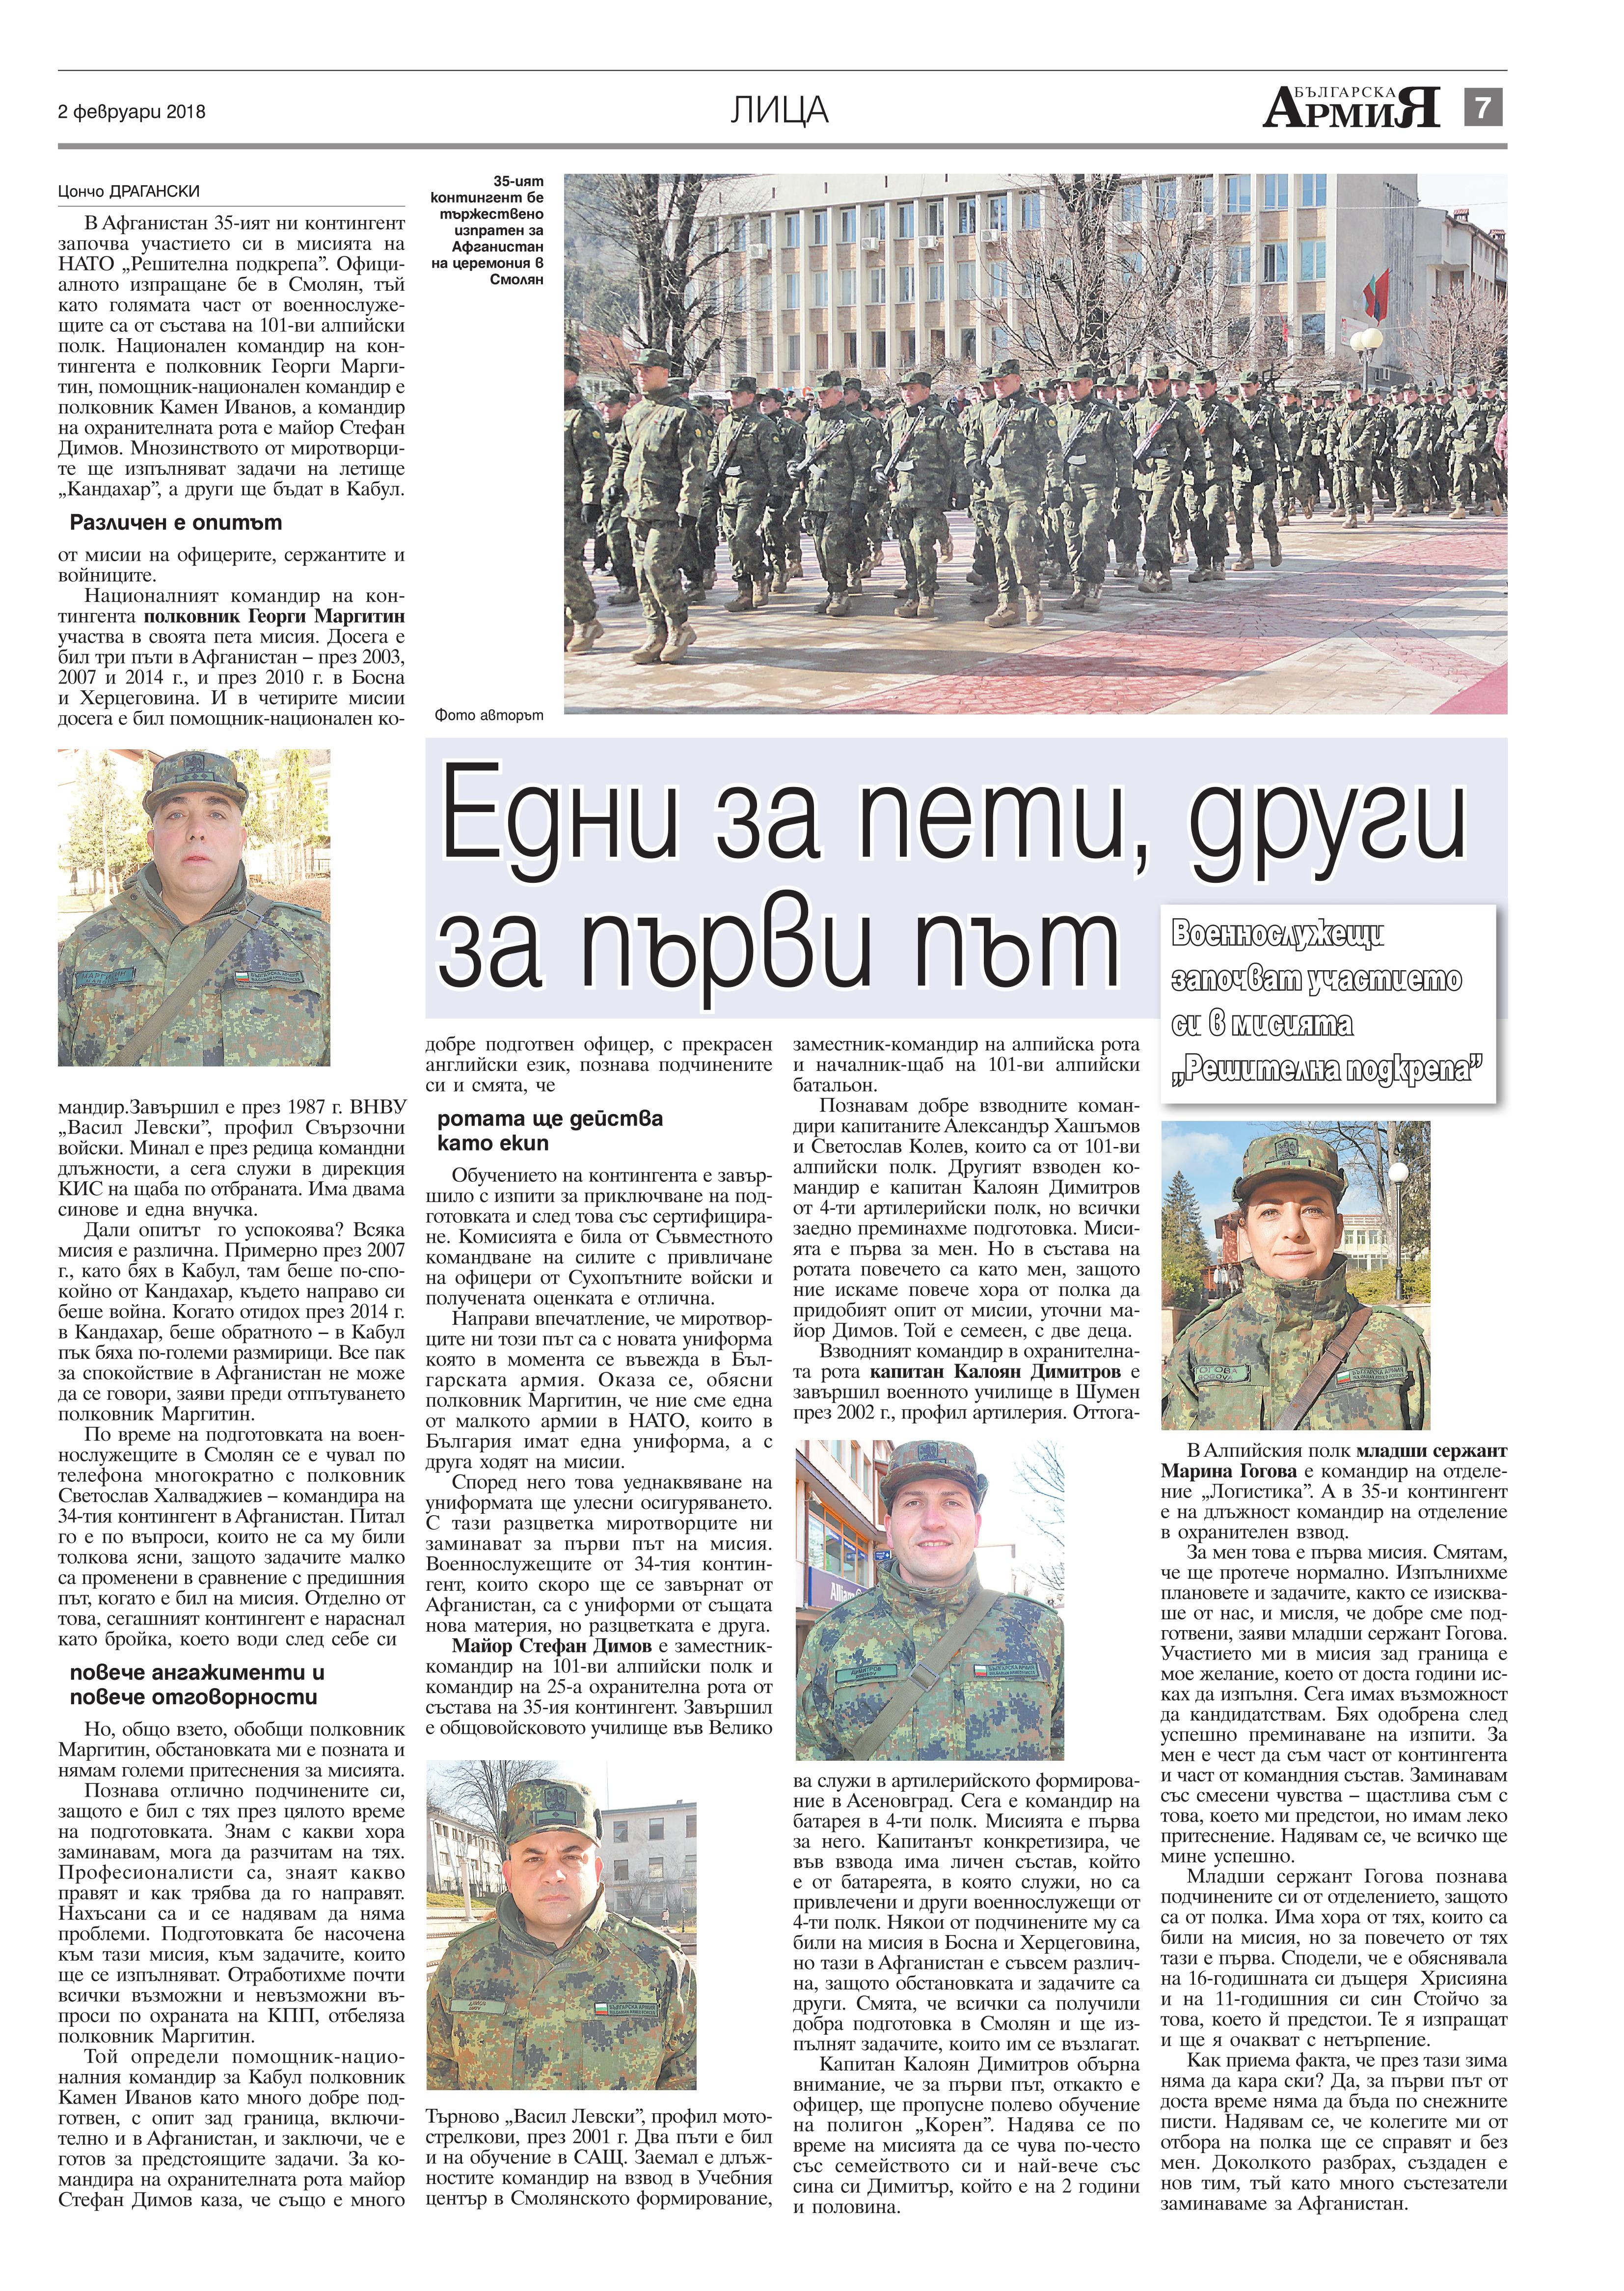 http://armymedia.bg/wp-content/uploads/2015/06/07.page1_-36.jpg